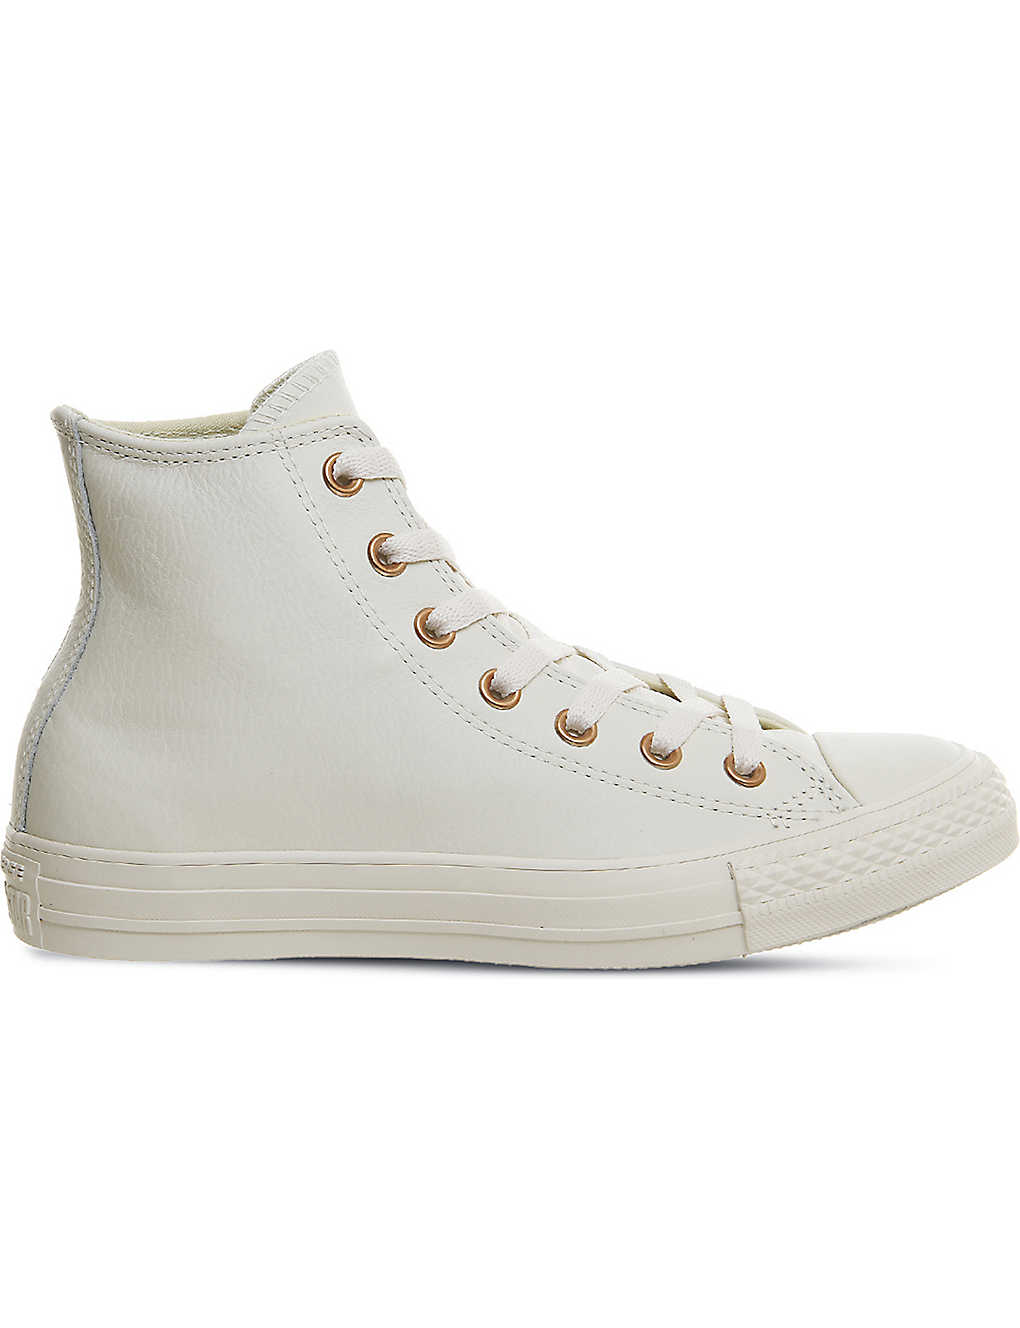 b5586b3fc3c6 CONVERSE - All Star high-top leather sneakers